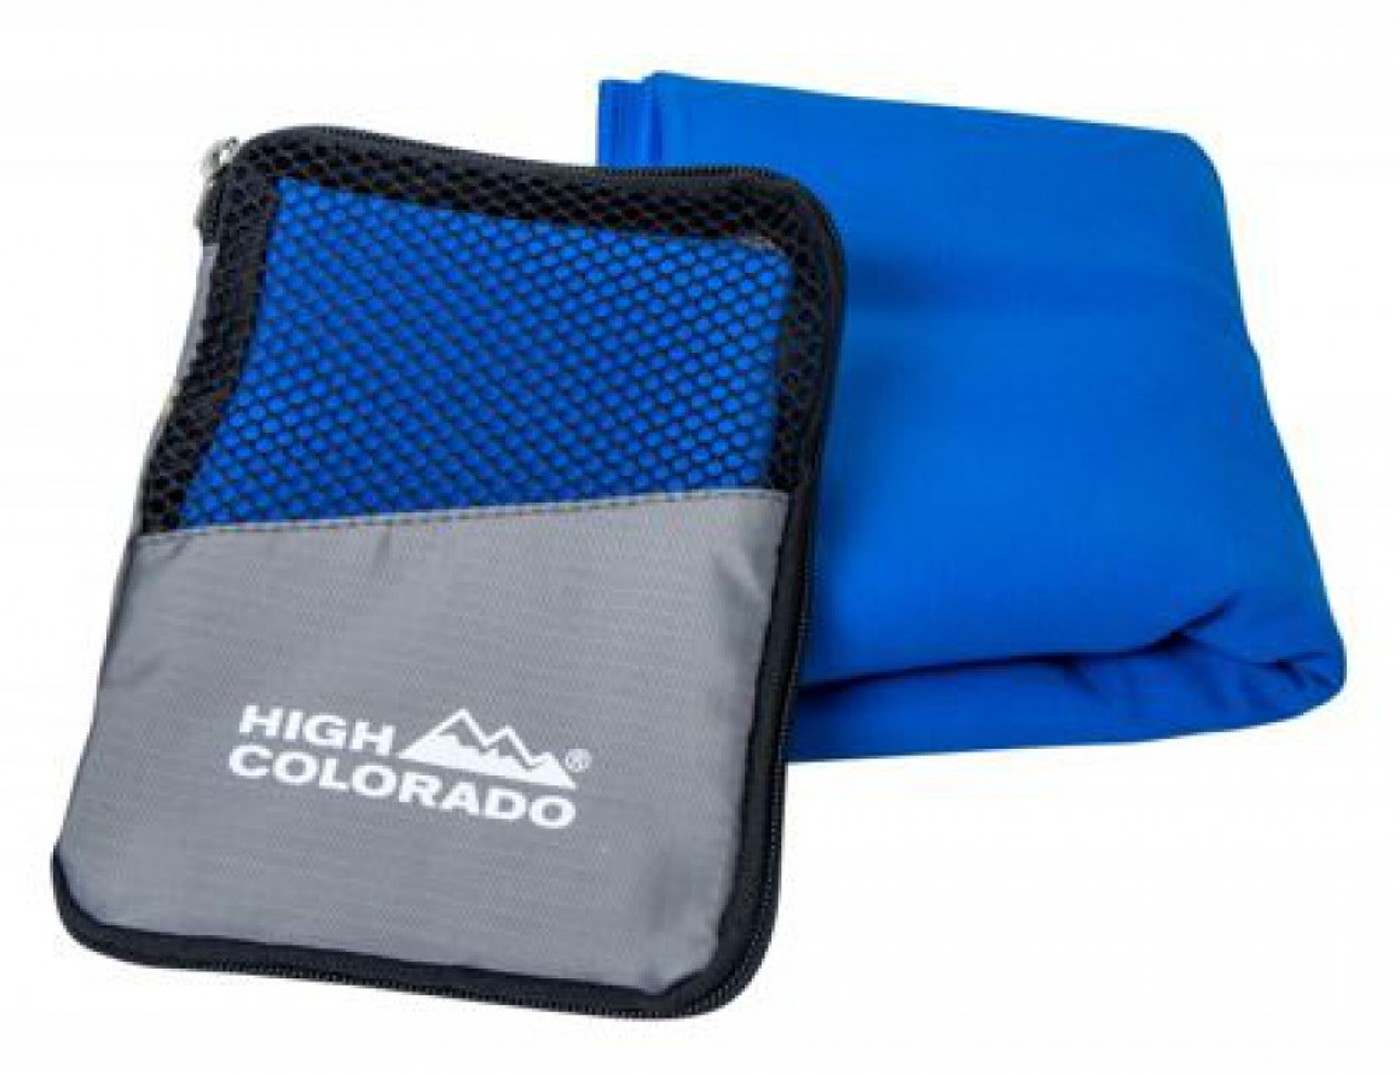 HIGH COLORADO TRAVEL TOWEL